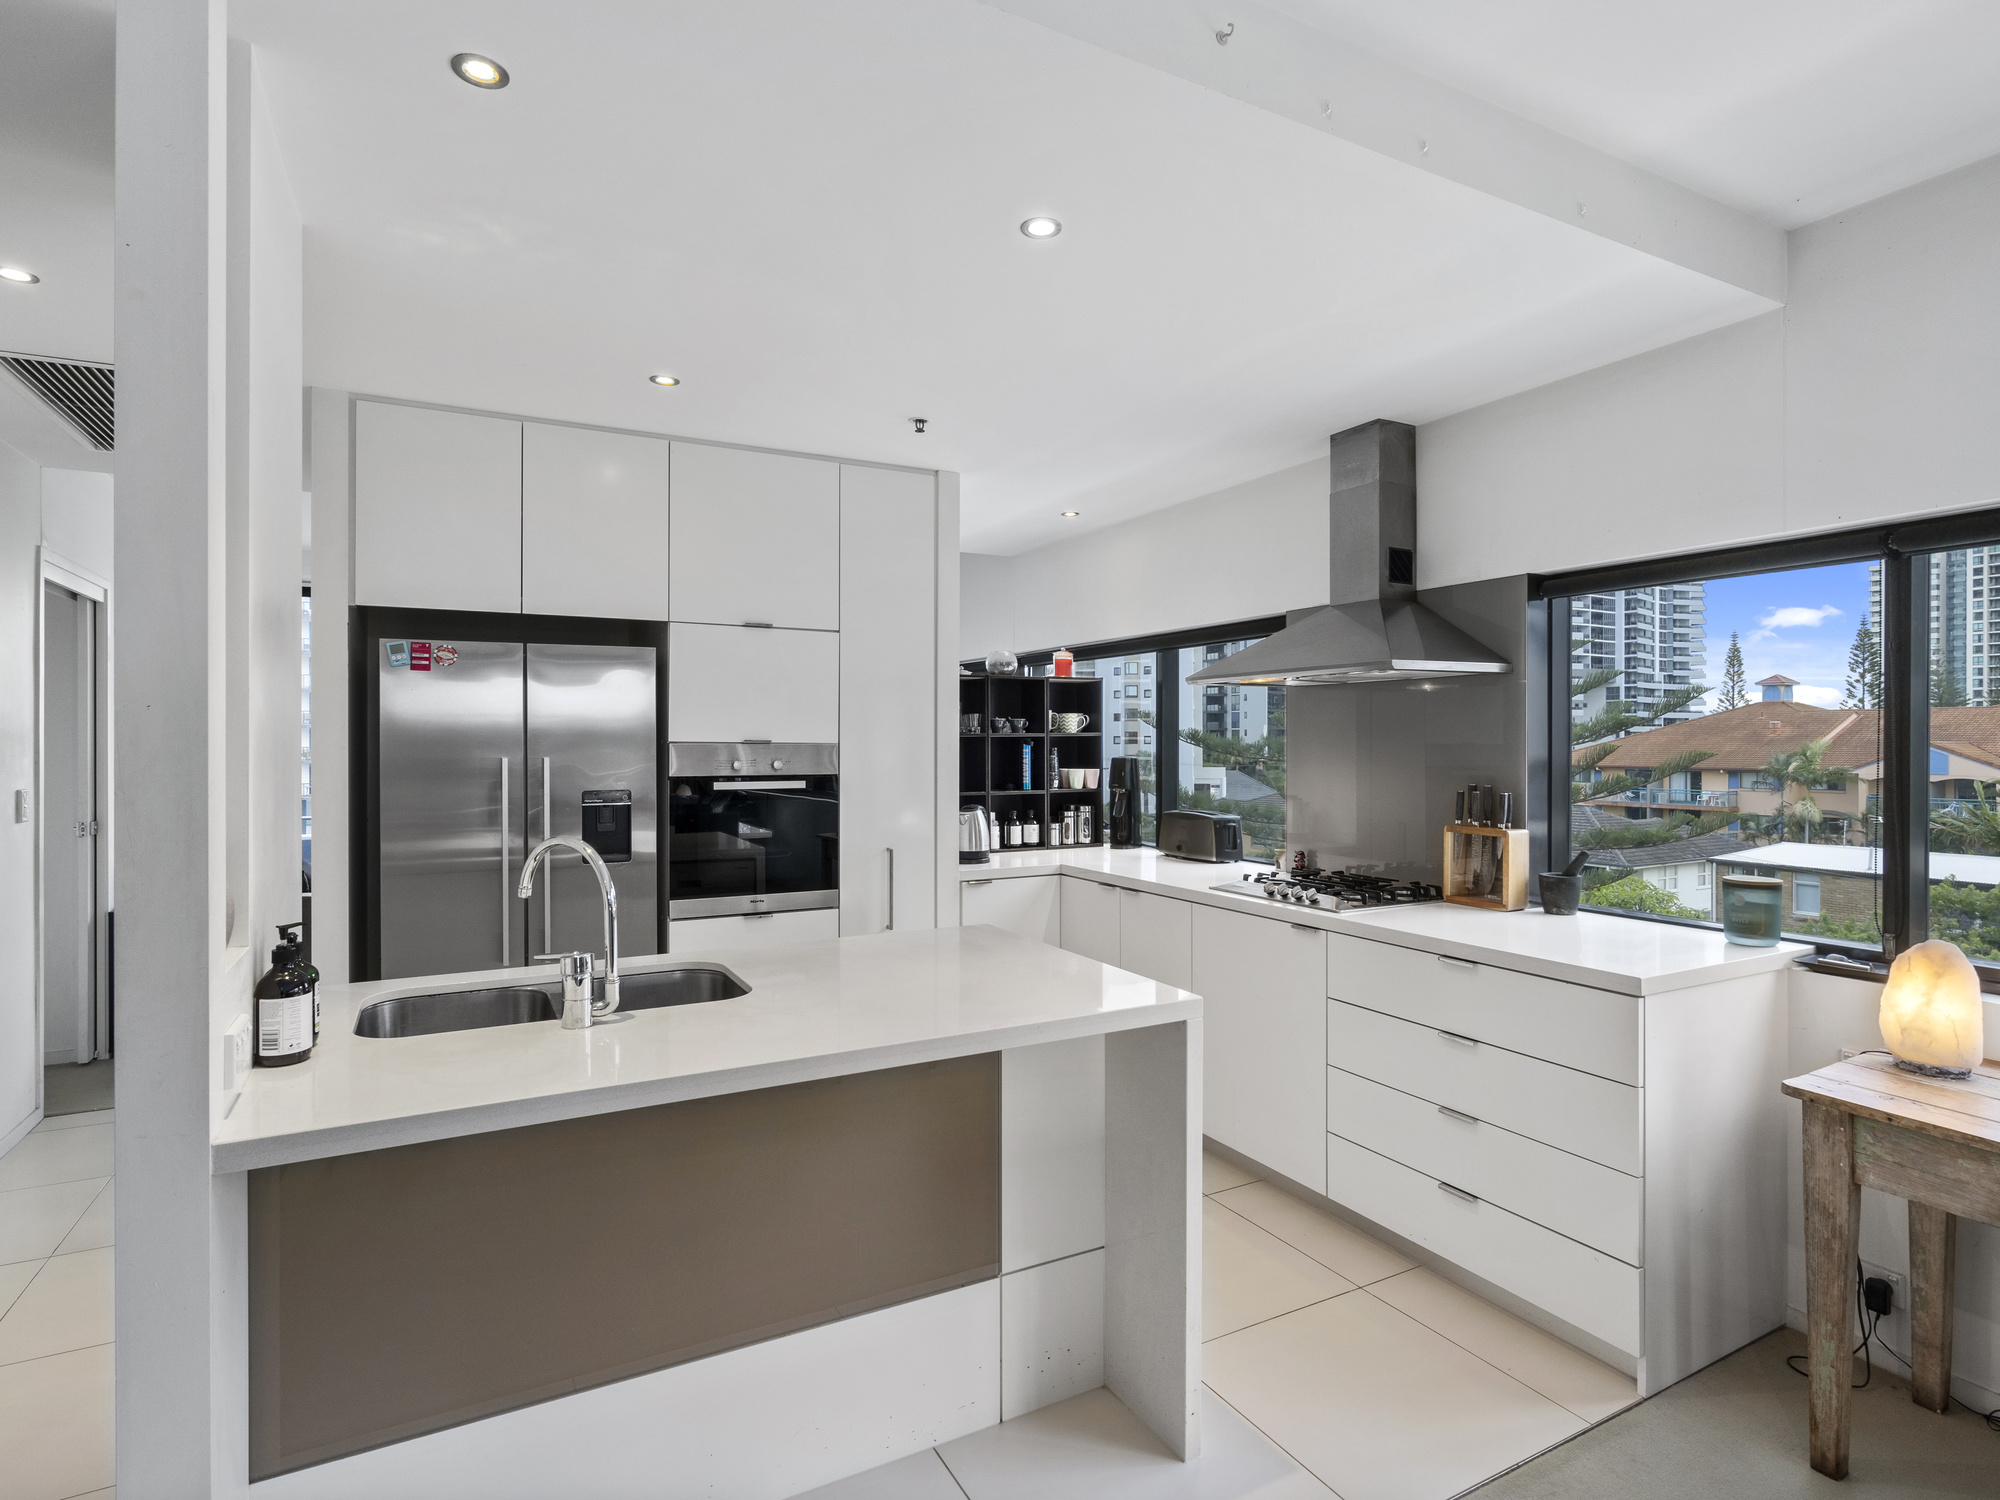 Real Estate | Gold Coast | Chevron Realty | 003 Open2view Id685729 301 14 George Avenue